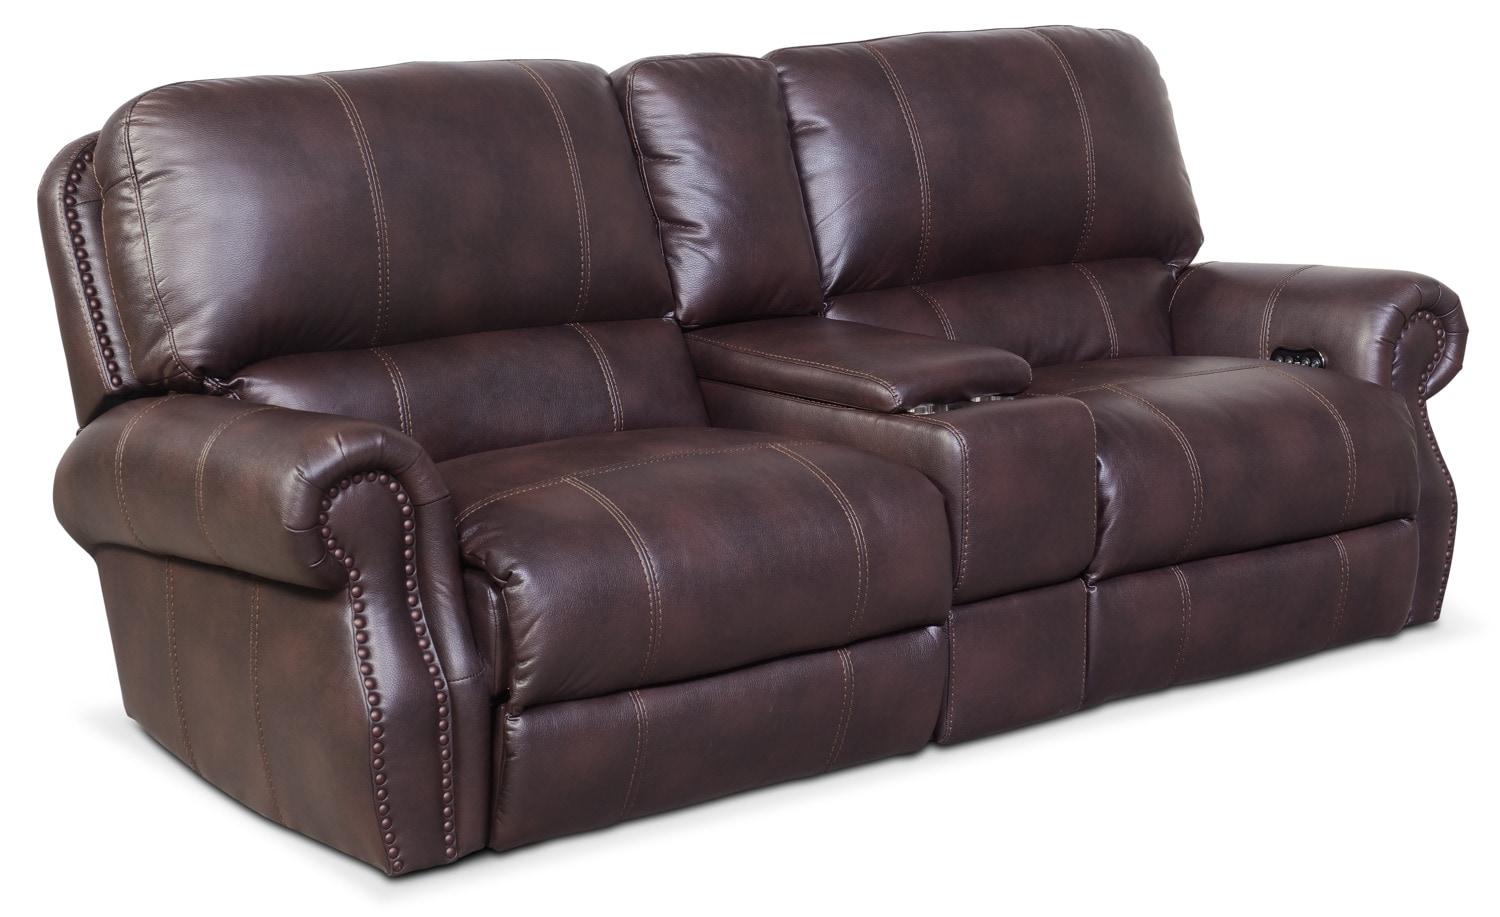 Living Room Furniture - Dartmouth 3-Piece Power Reclining Sofa with Console - Burgundy